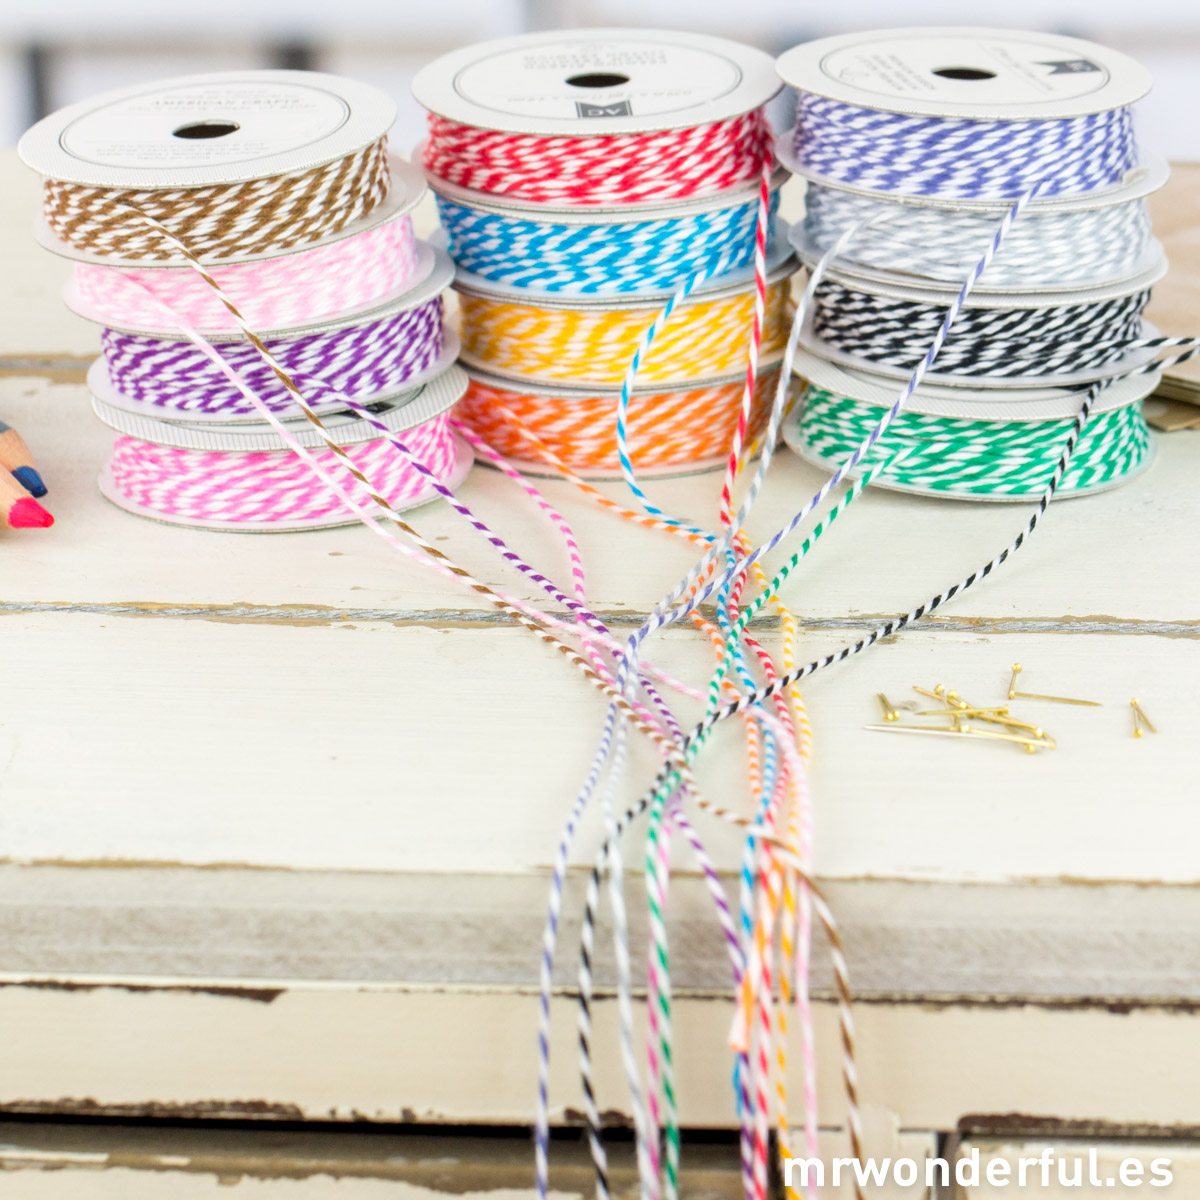 mrwonderful_366303_pack-12-baker-twine-colores-surtidos.-24